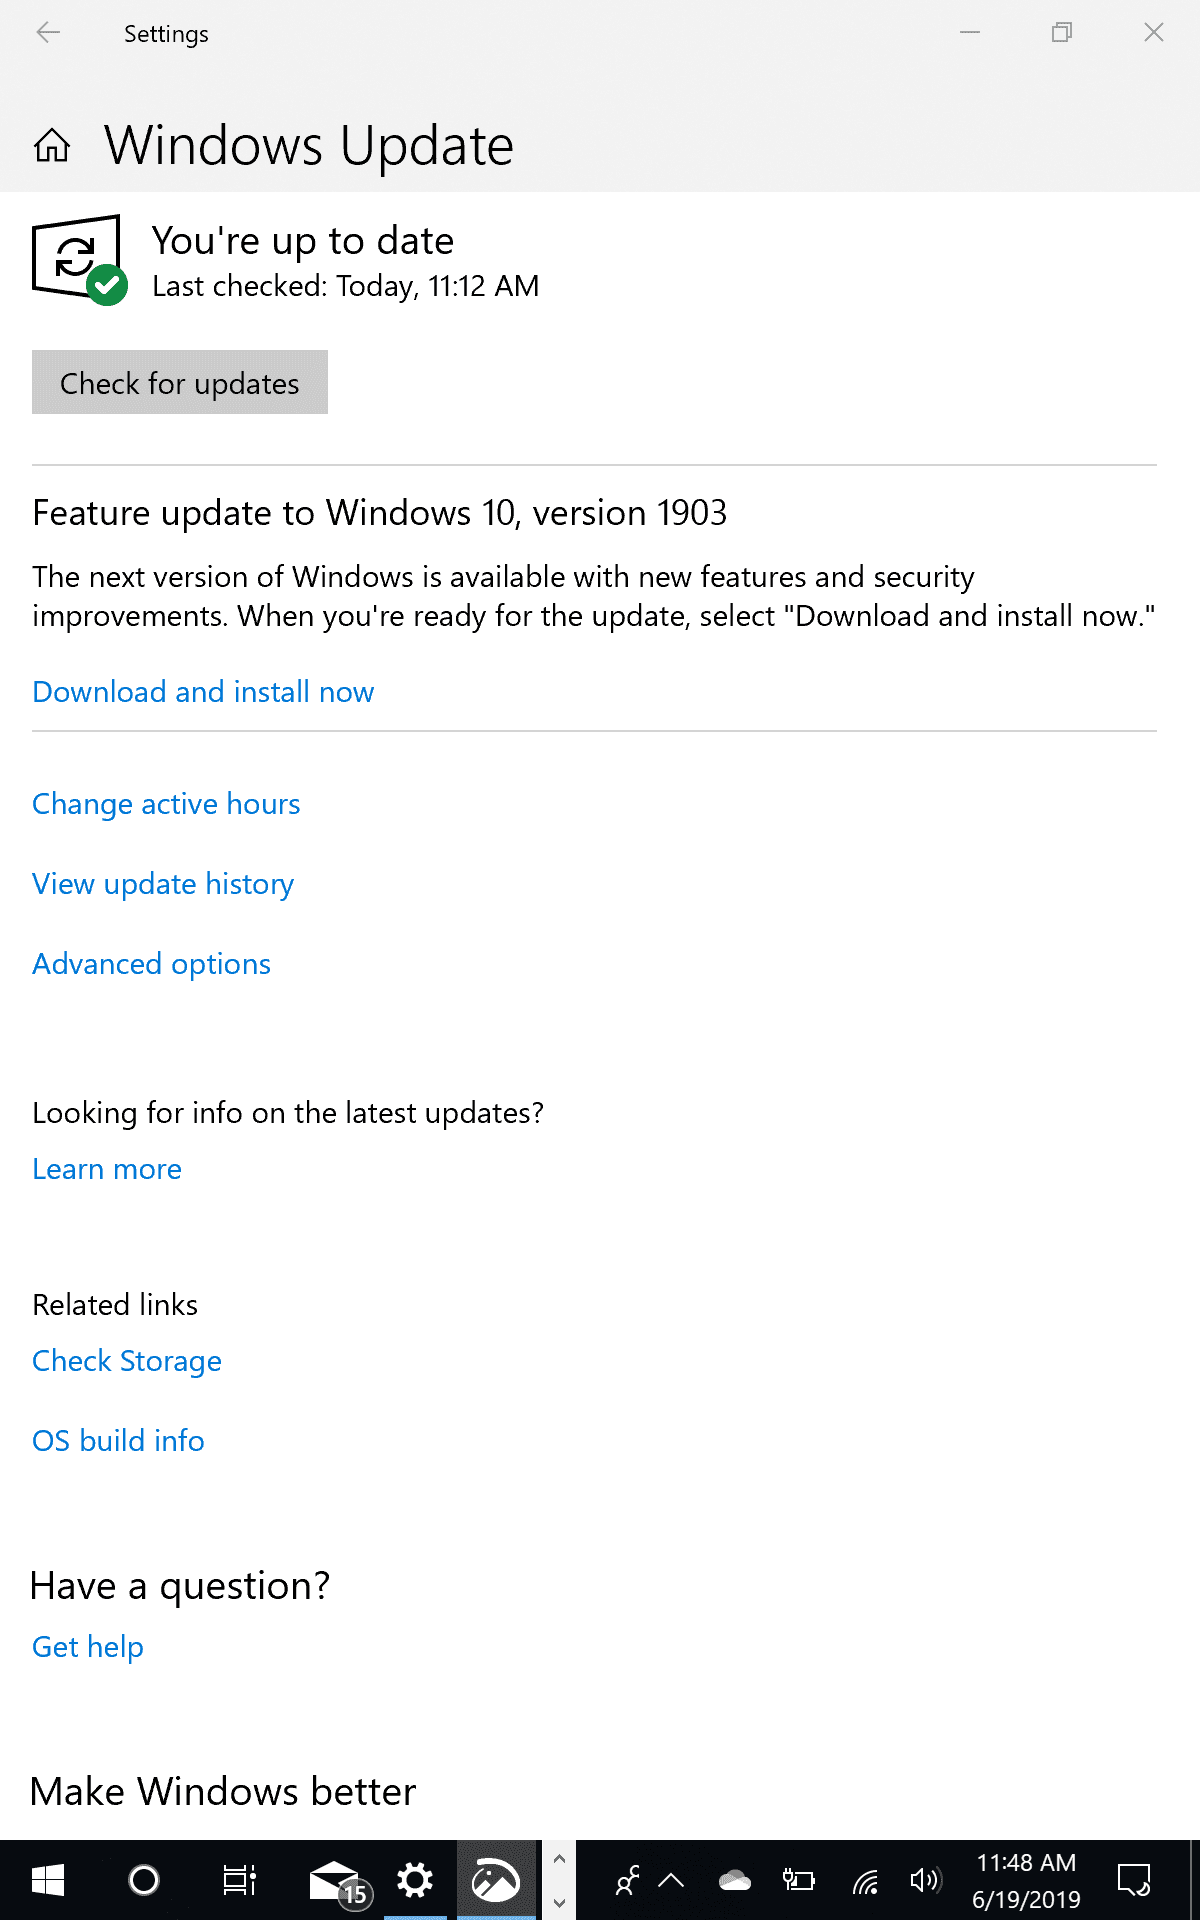 Windows Update Notice for Windows 10 Version 1903